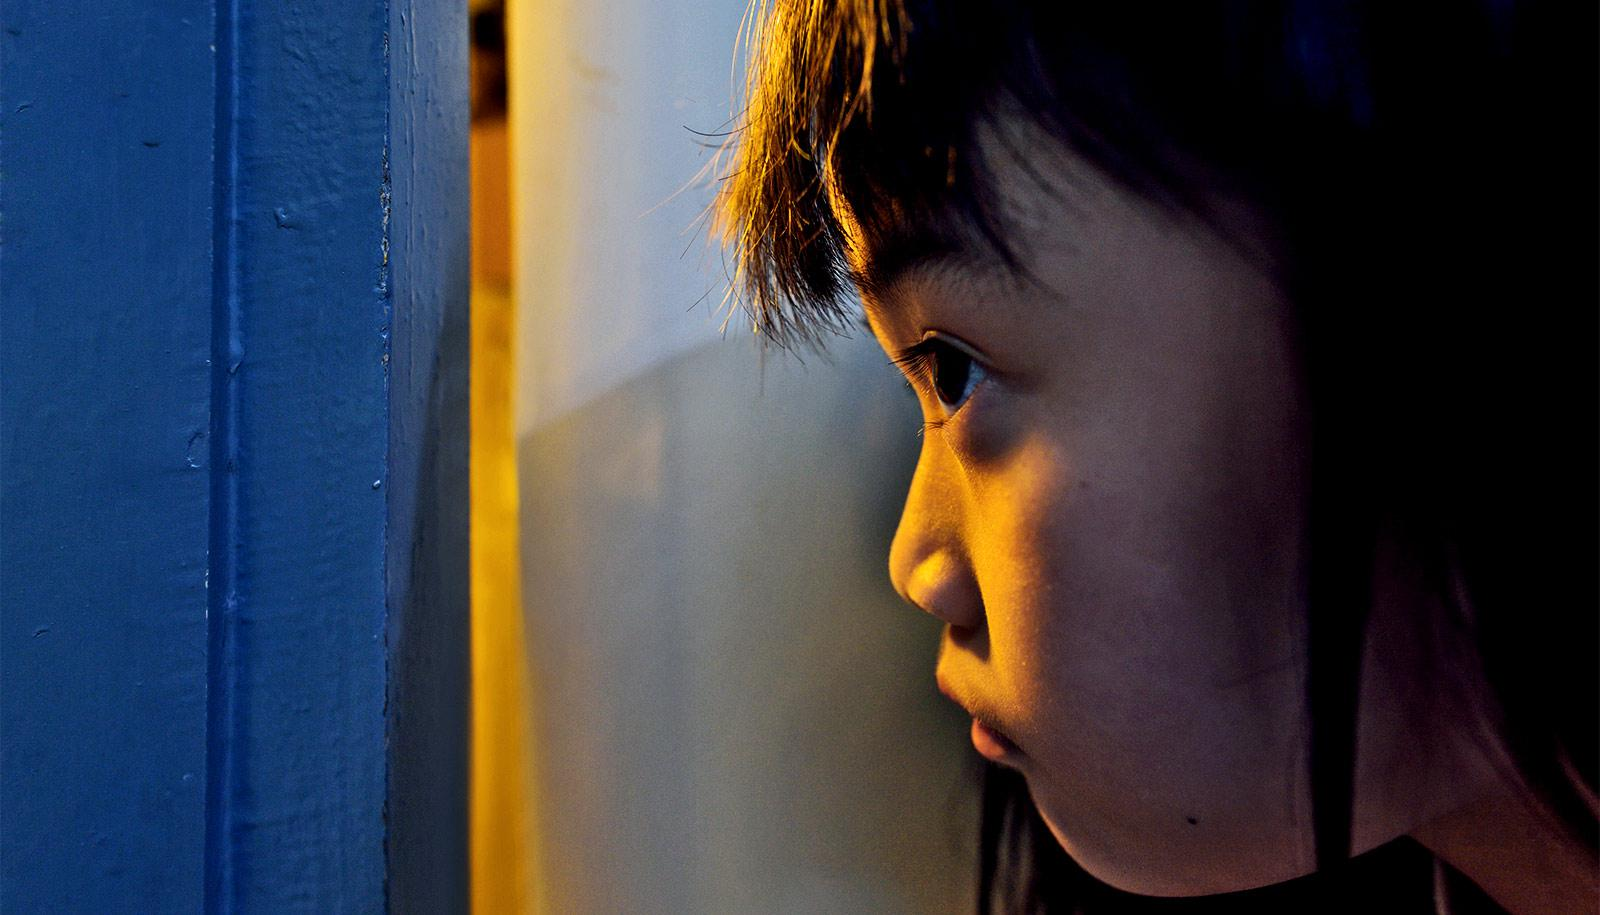 A young girl looks through a slightly-opened door